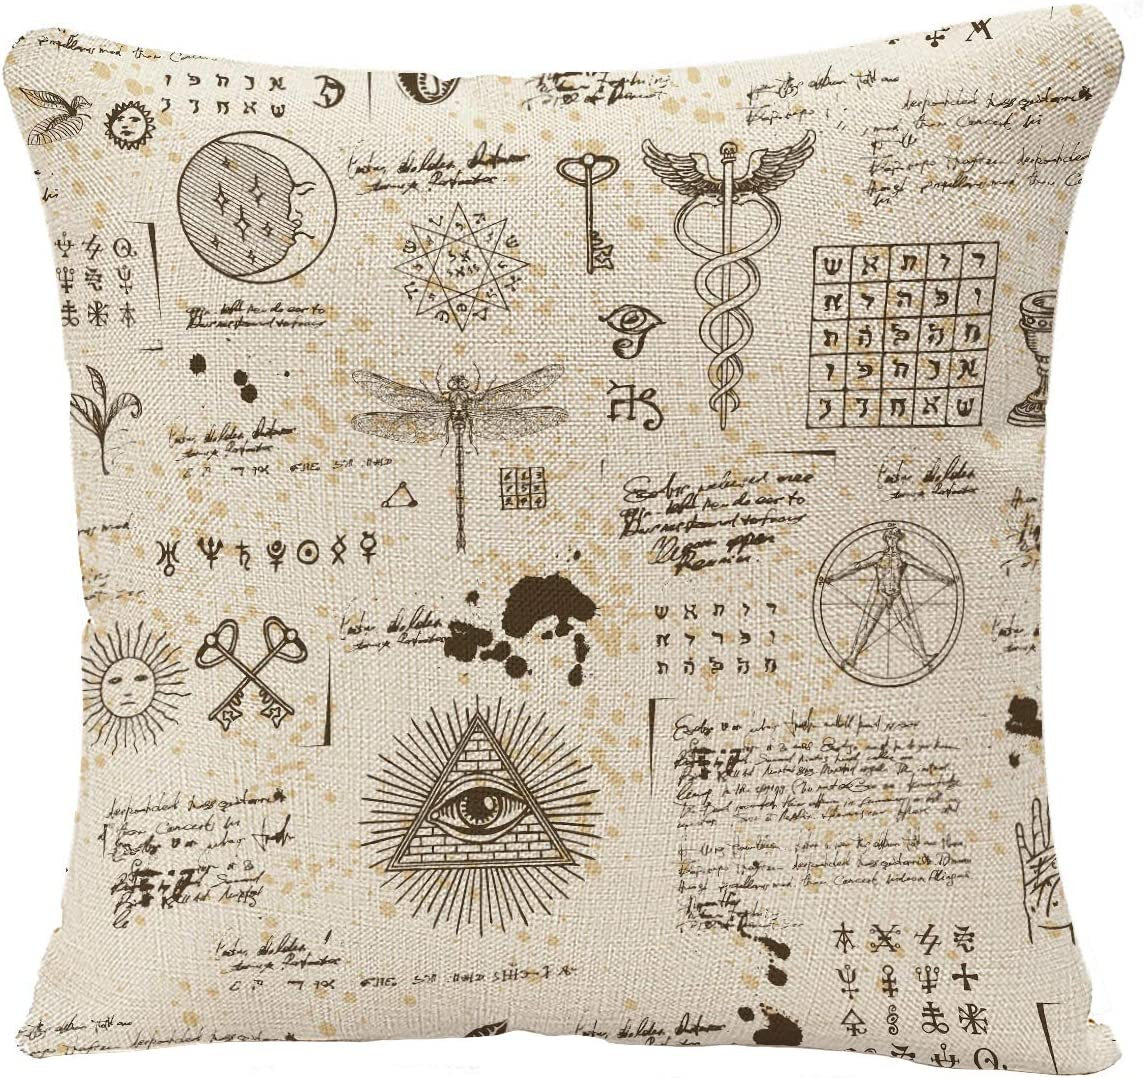 YGGQF Masonic Symbols Throw Pillow Cover Mysticism Magic Religion Occultism Palmistry Moon Sun Vintage Home Decor Decorative Pillowcase for Sofa Car Indoor 18x18 Inches